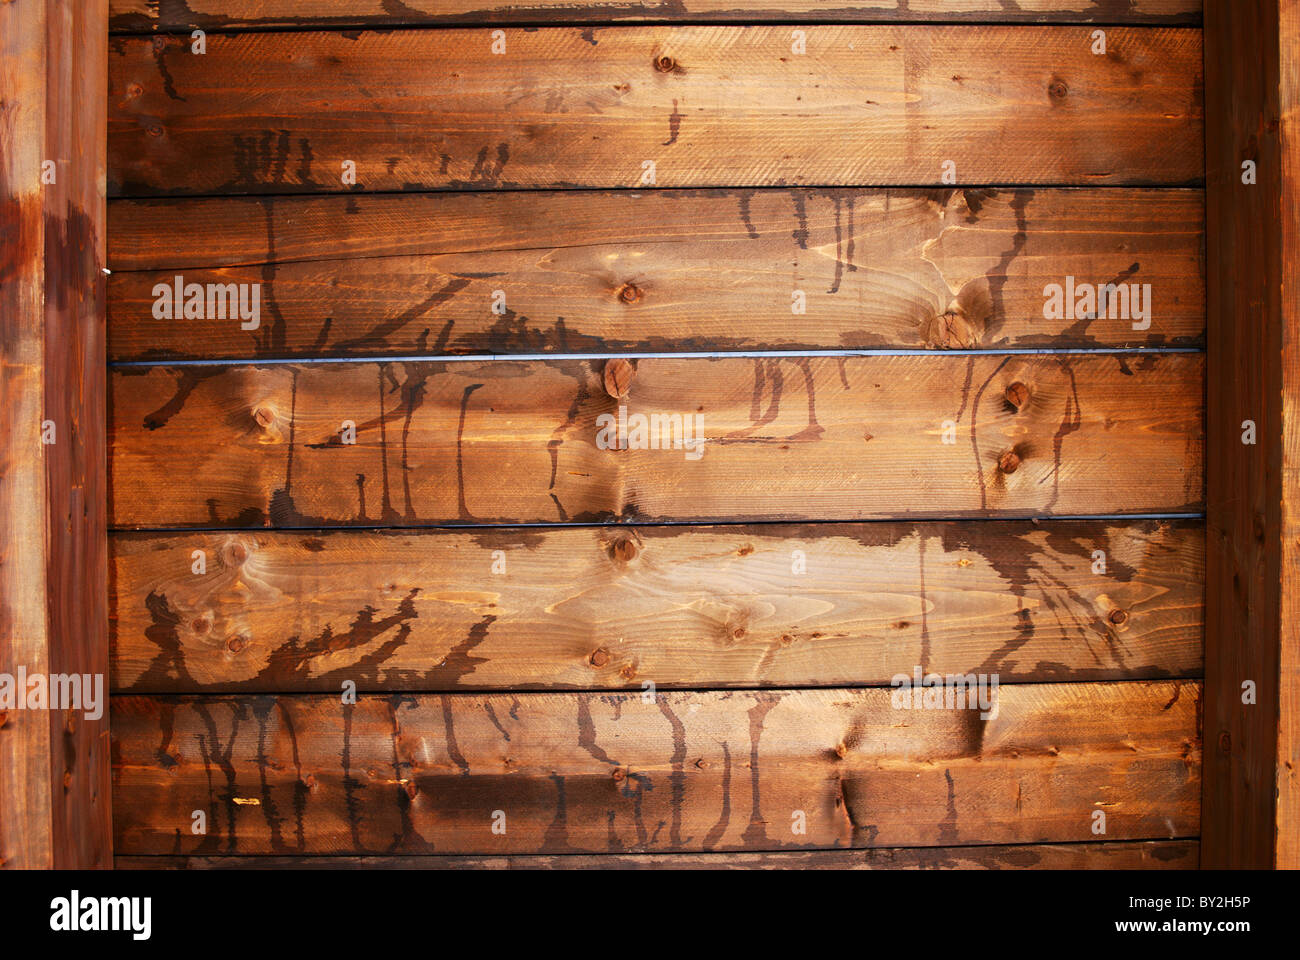 Wooden Ceiling Beams Stock Photos & Wooden Ceiling Beams